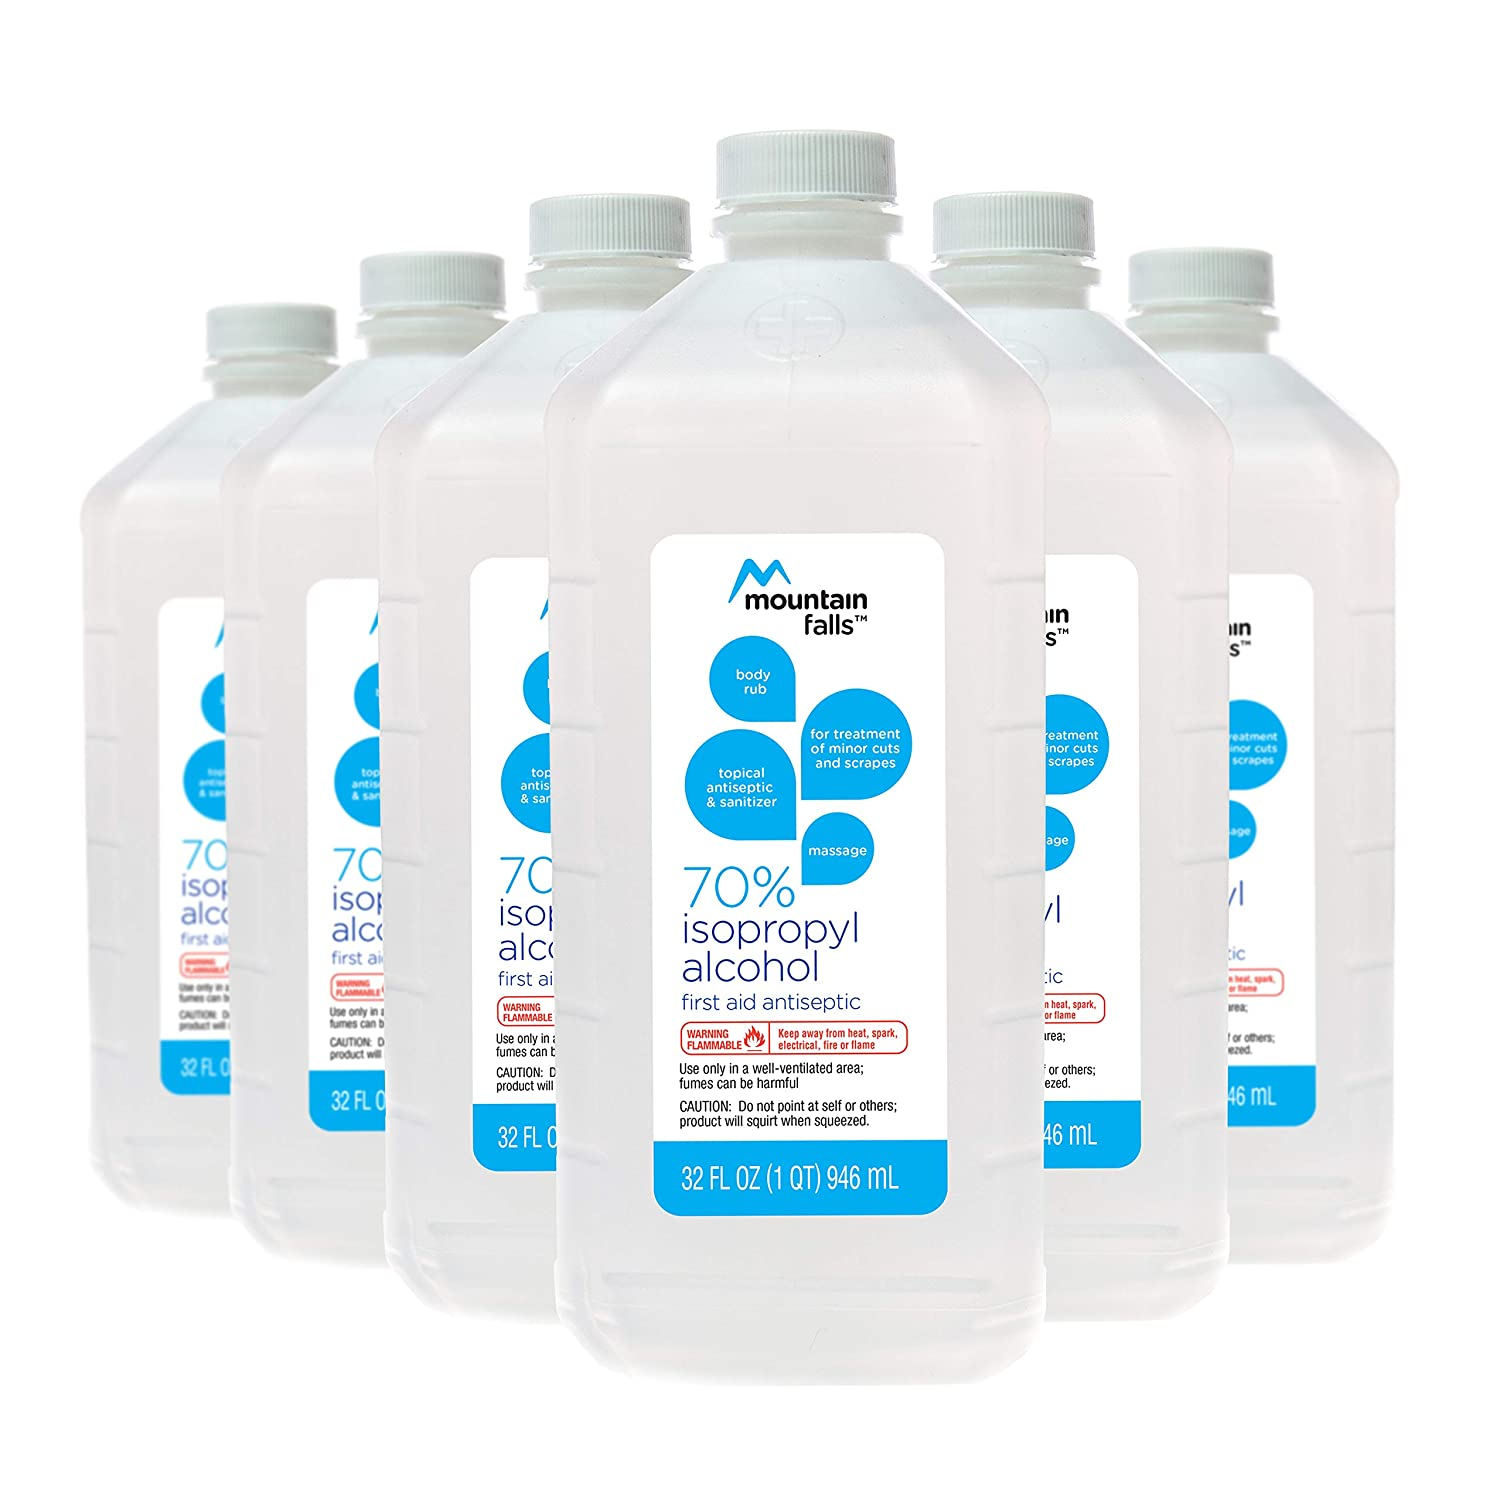 Mountain Falls 70% Isopropyl Alcohol First Aid Antiseptic for Treatment of  Minor Cuts and Scrapes, 32